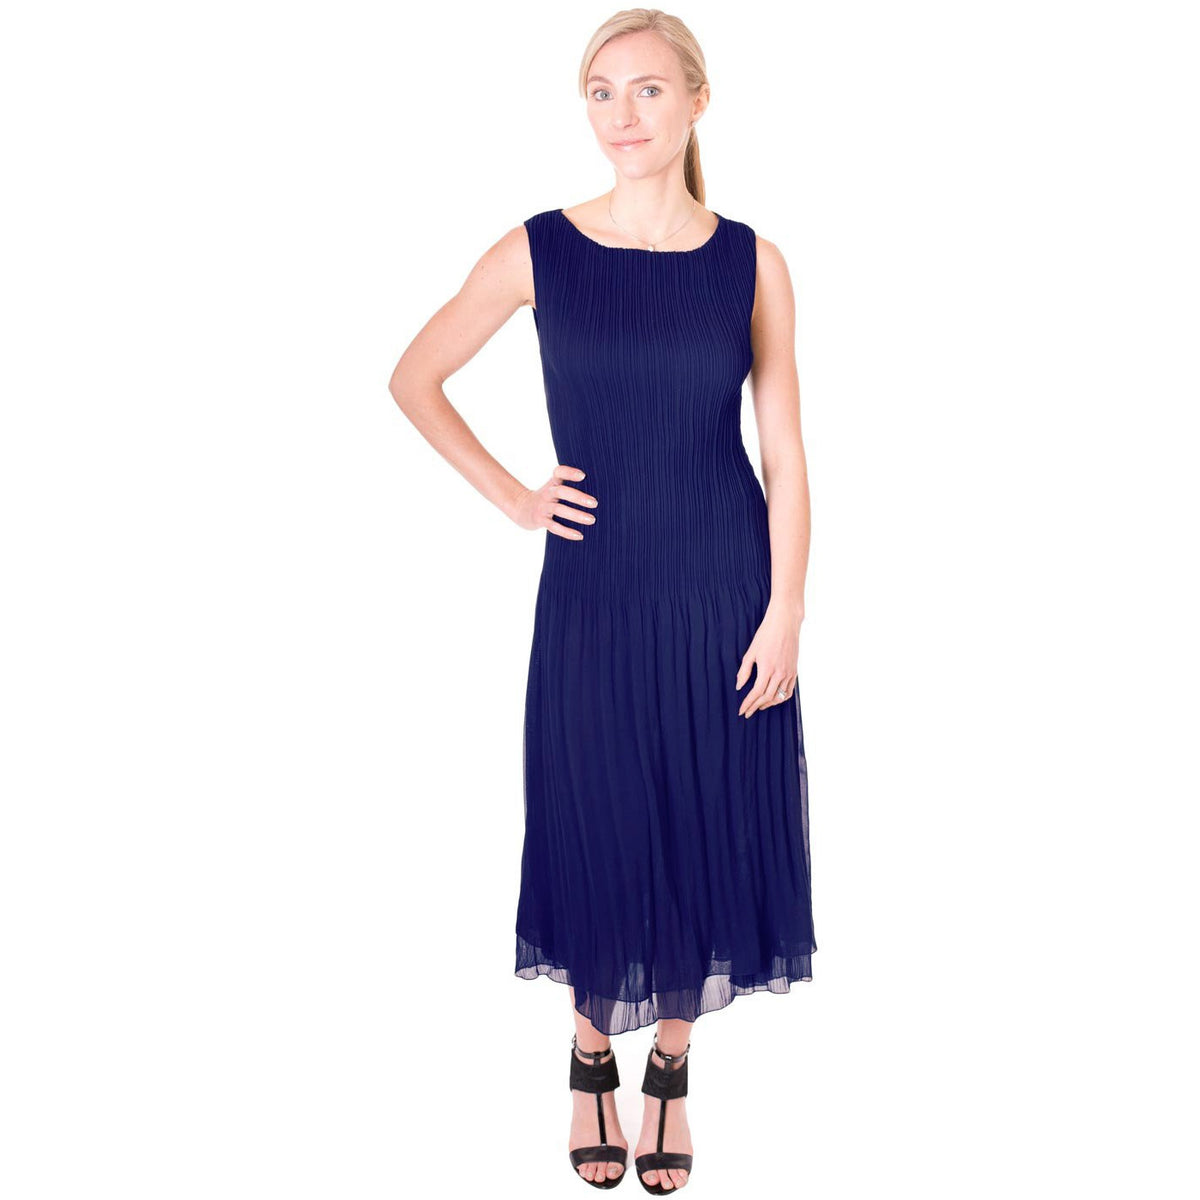 High Neck Crinkle Dress - Navy